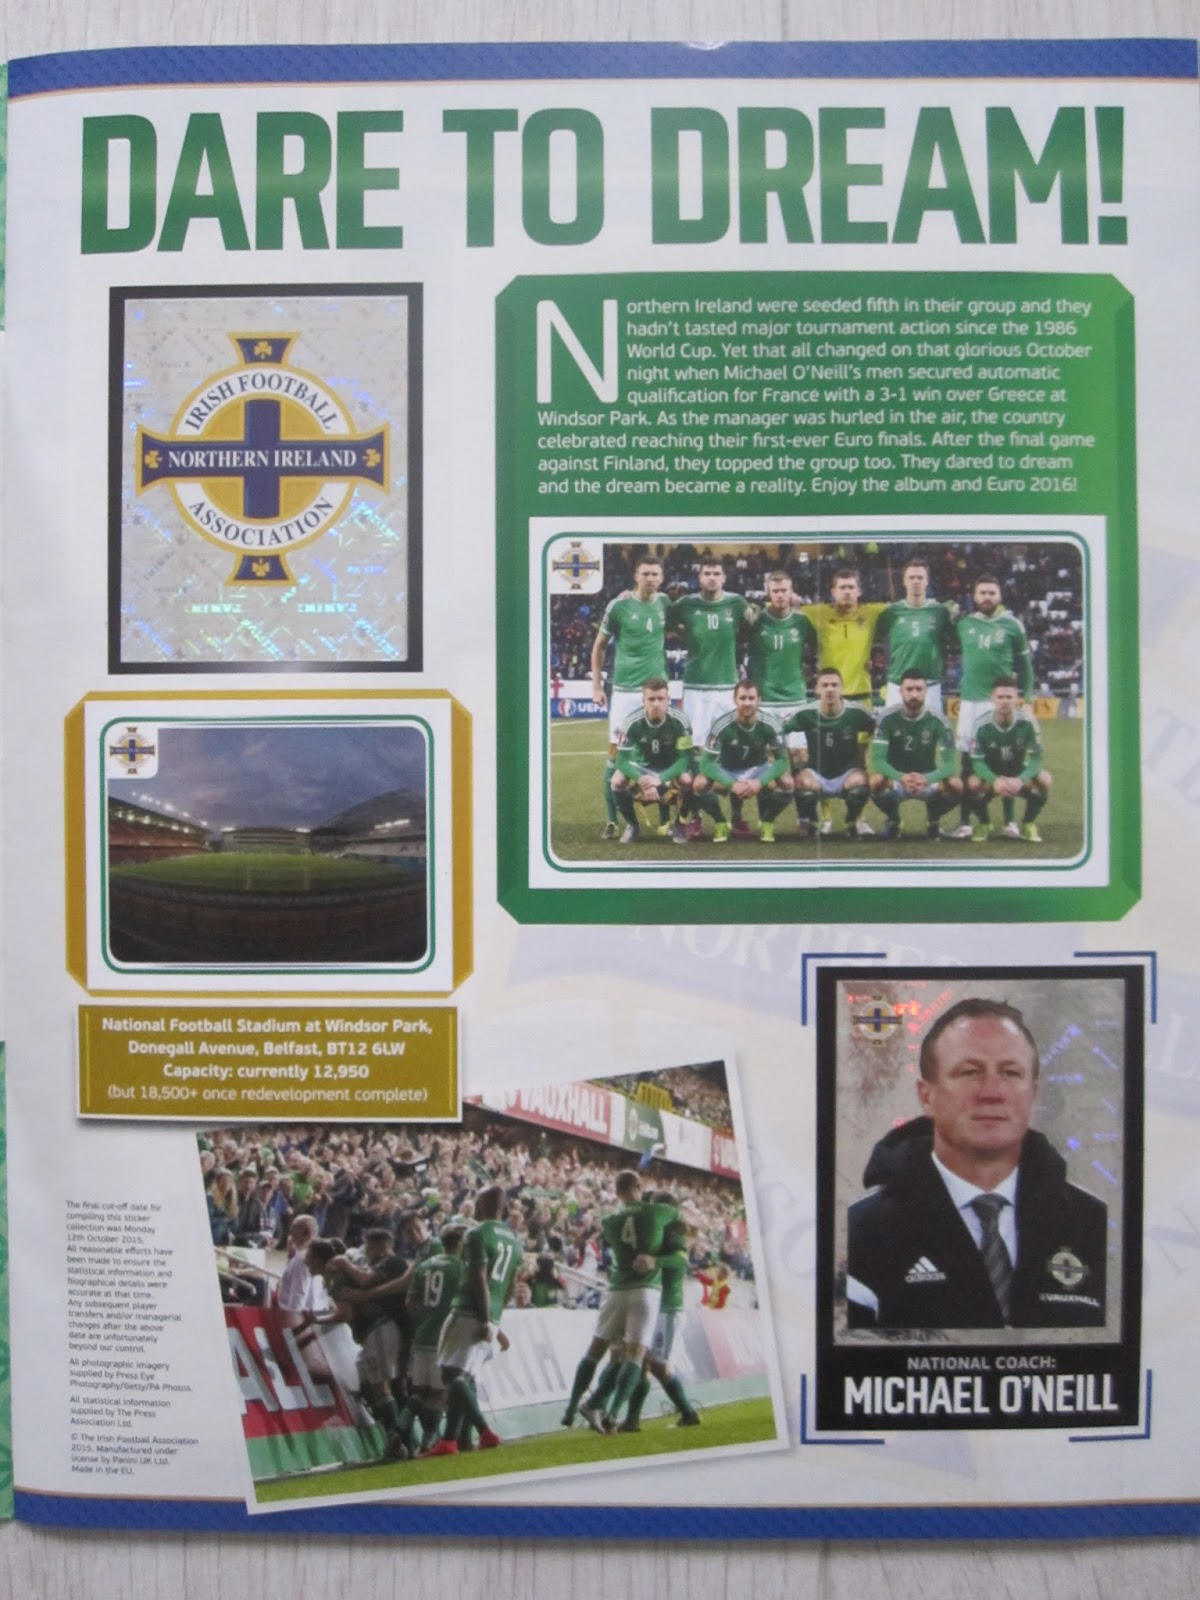 The album continues with the northern ireland squad with 36 stickers on four pages twenty players of the squad have their personal page which includes six